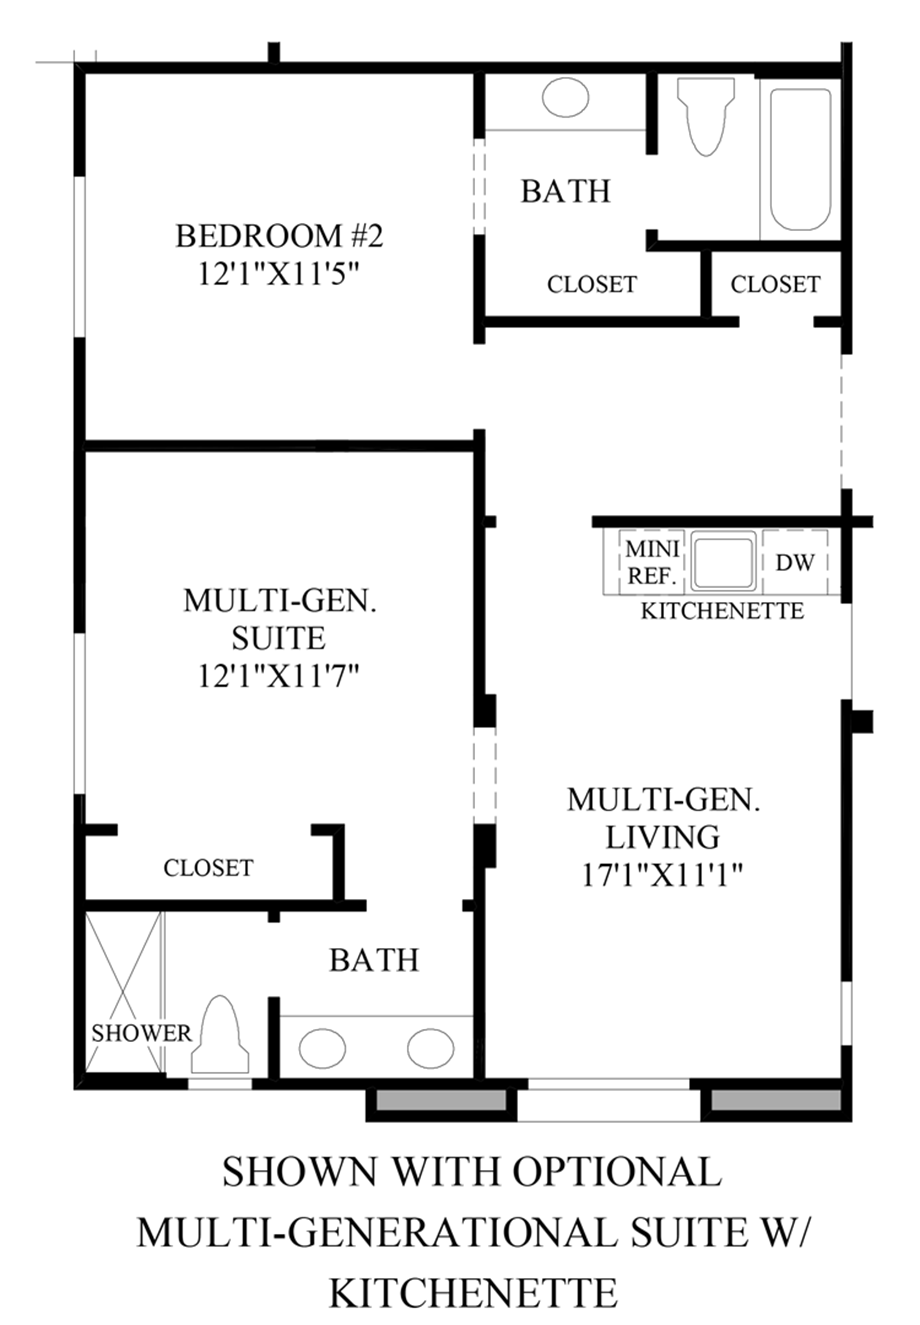 Optional Multi-Generational Suite w/ Kitchenette Floor Plan